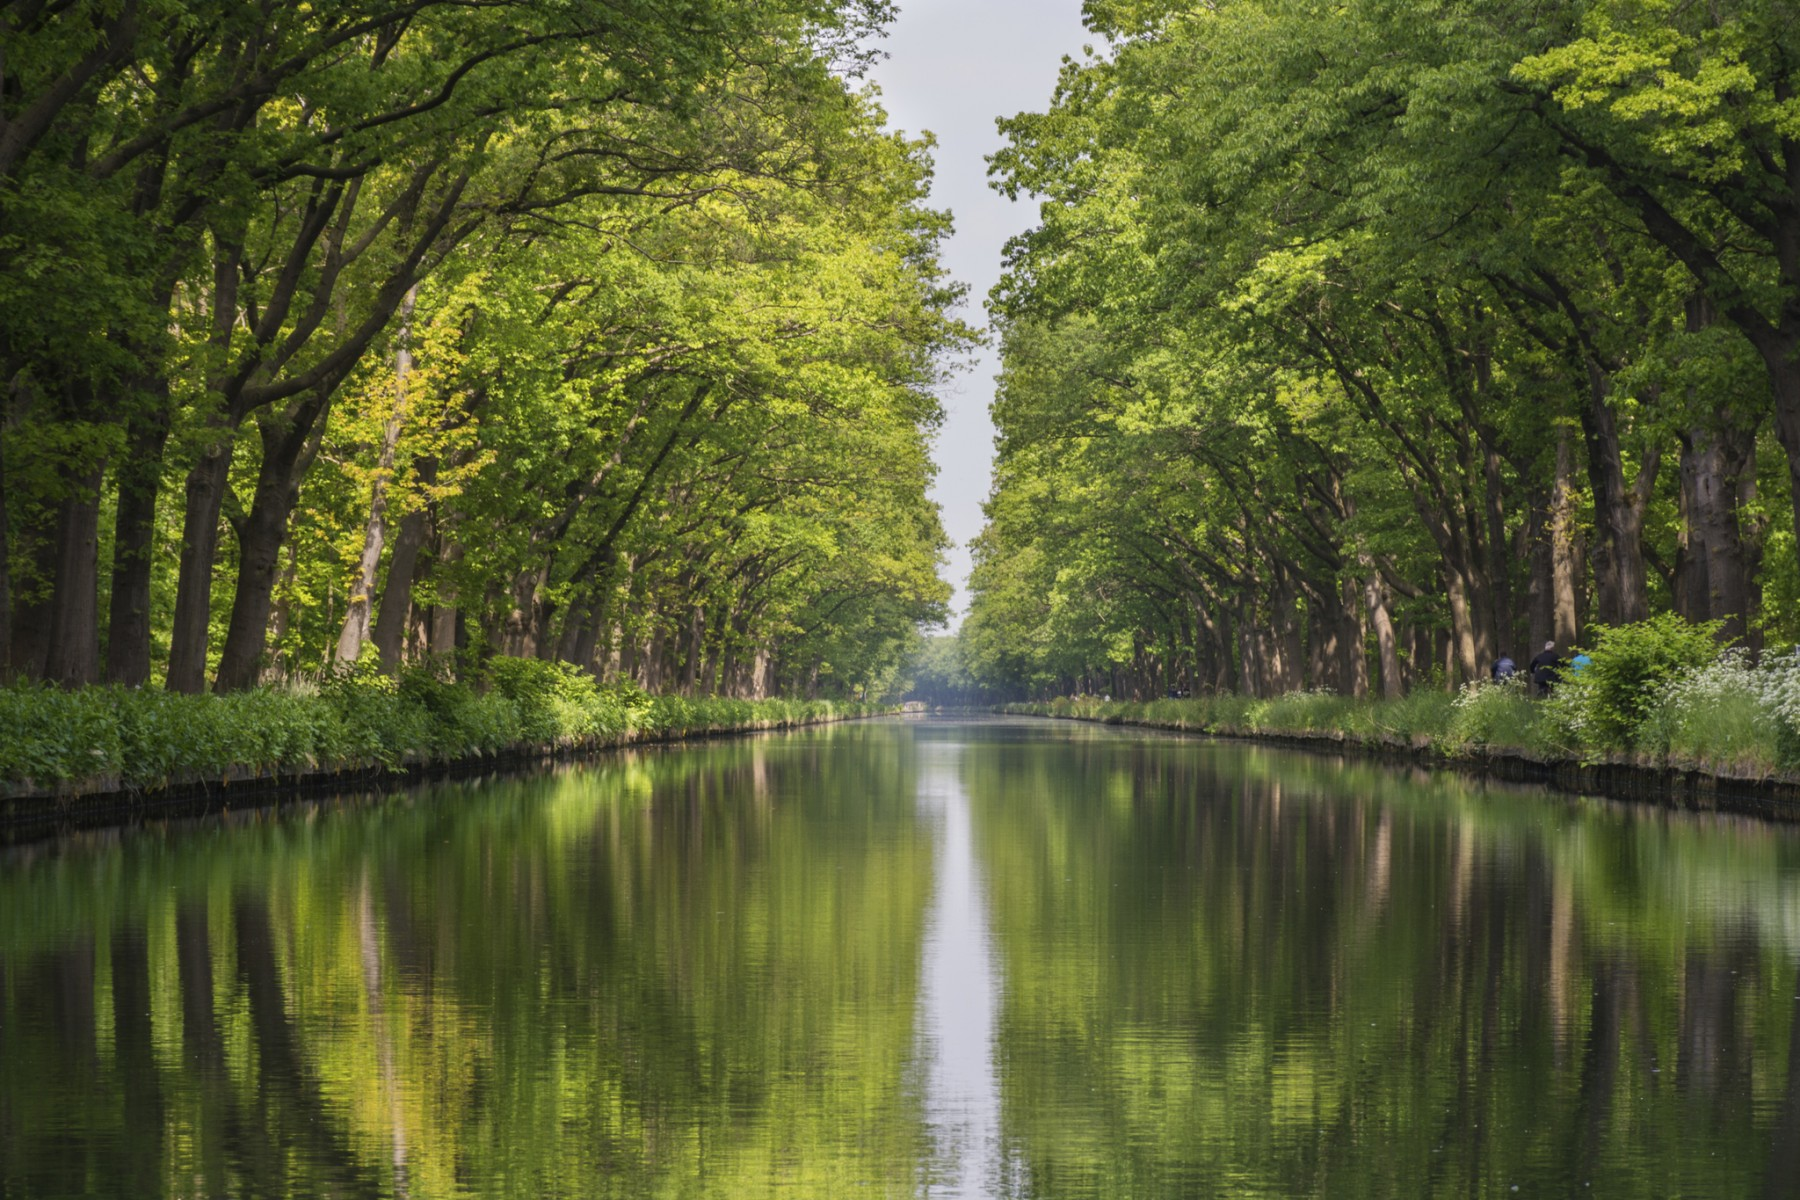 River lined with trees